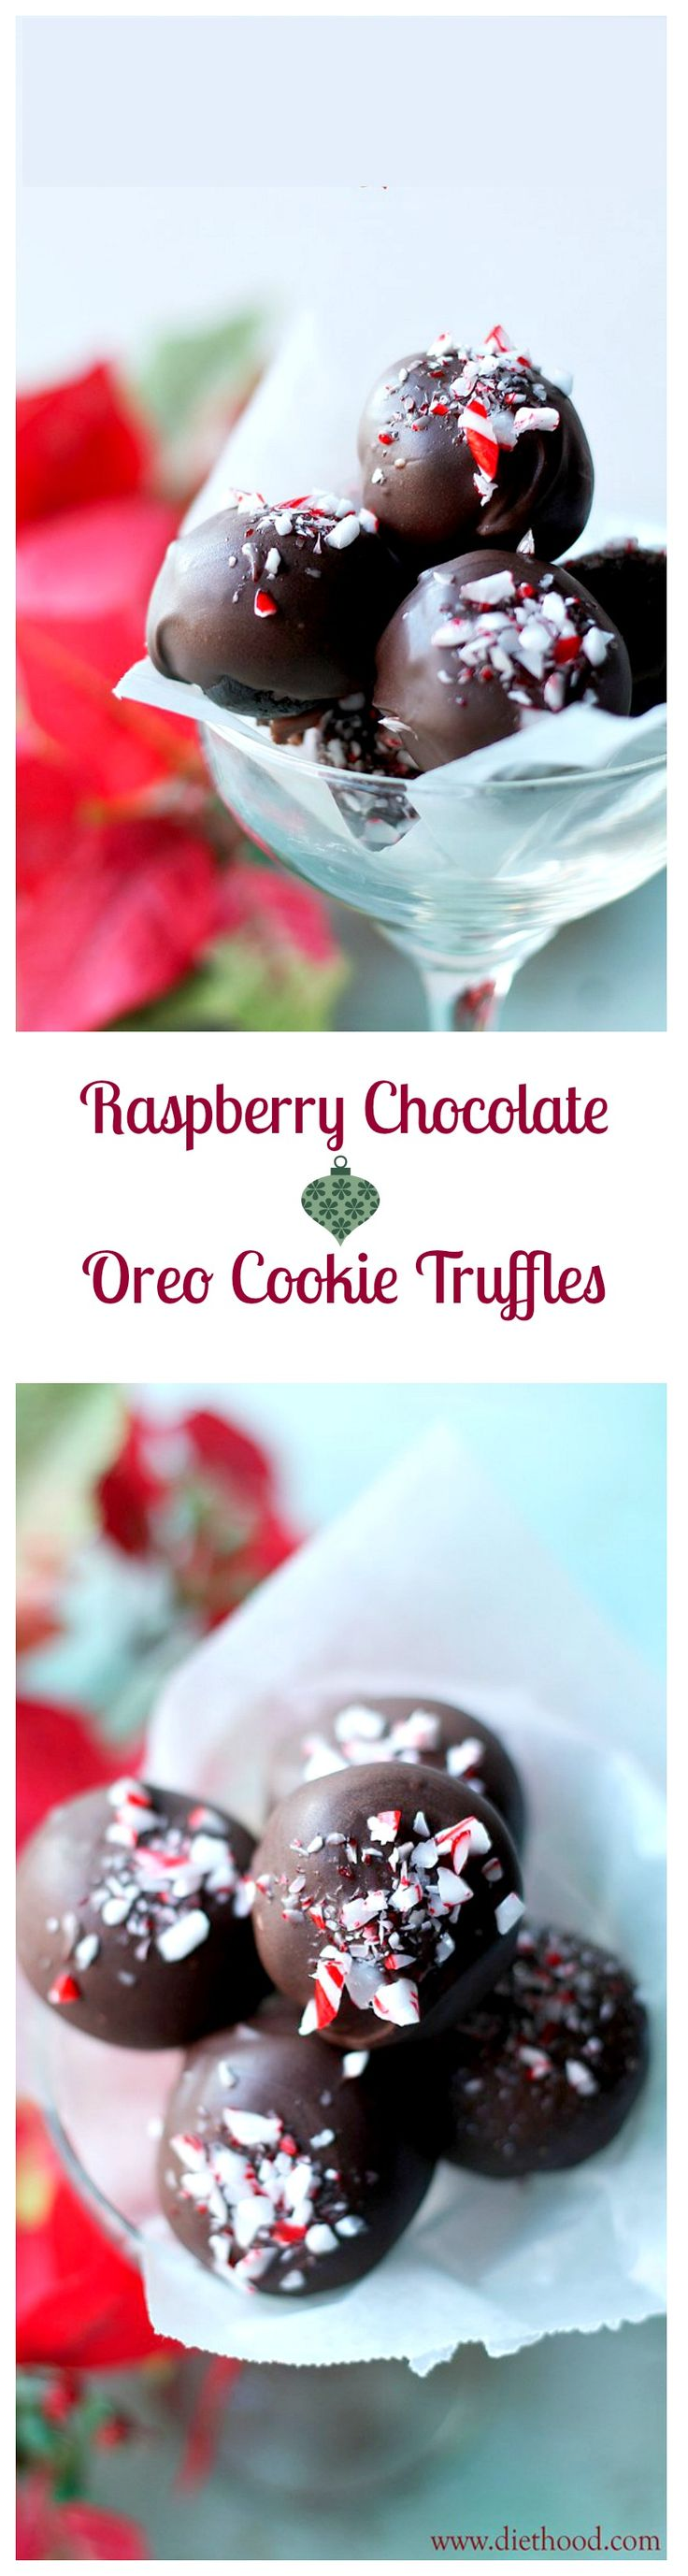 Simple, festive and delicious Cookie Truffles made with Oreos, cream cheese, raspberry chocolate and peppermint.